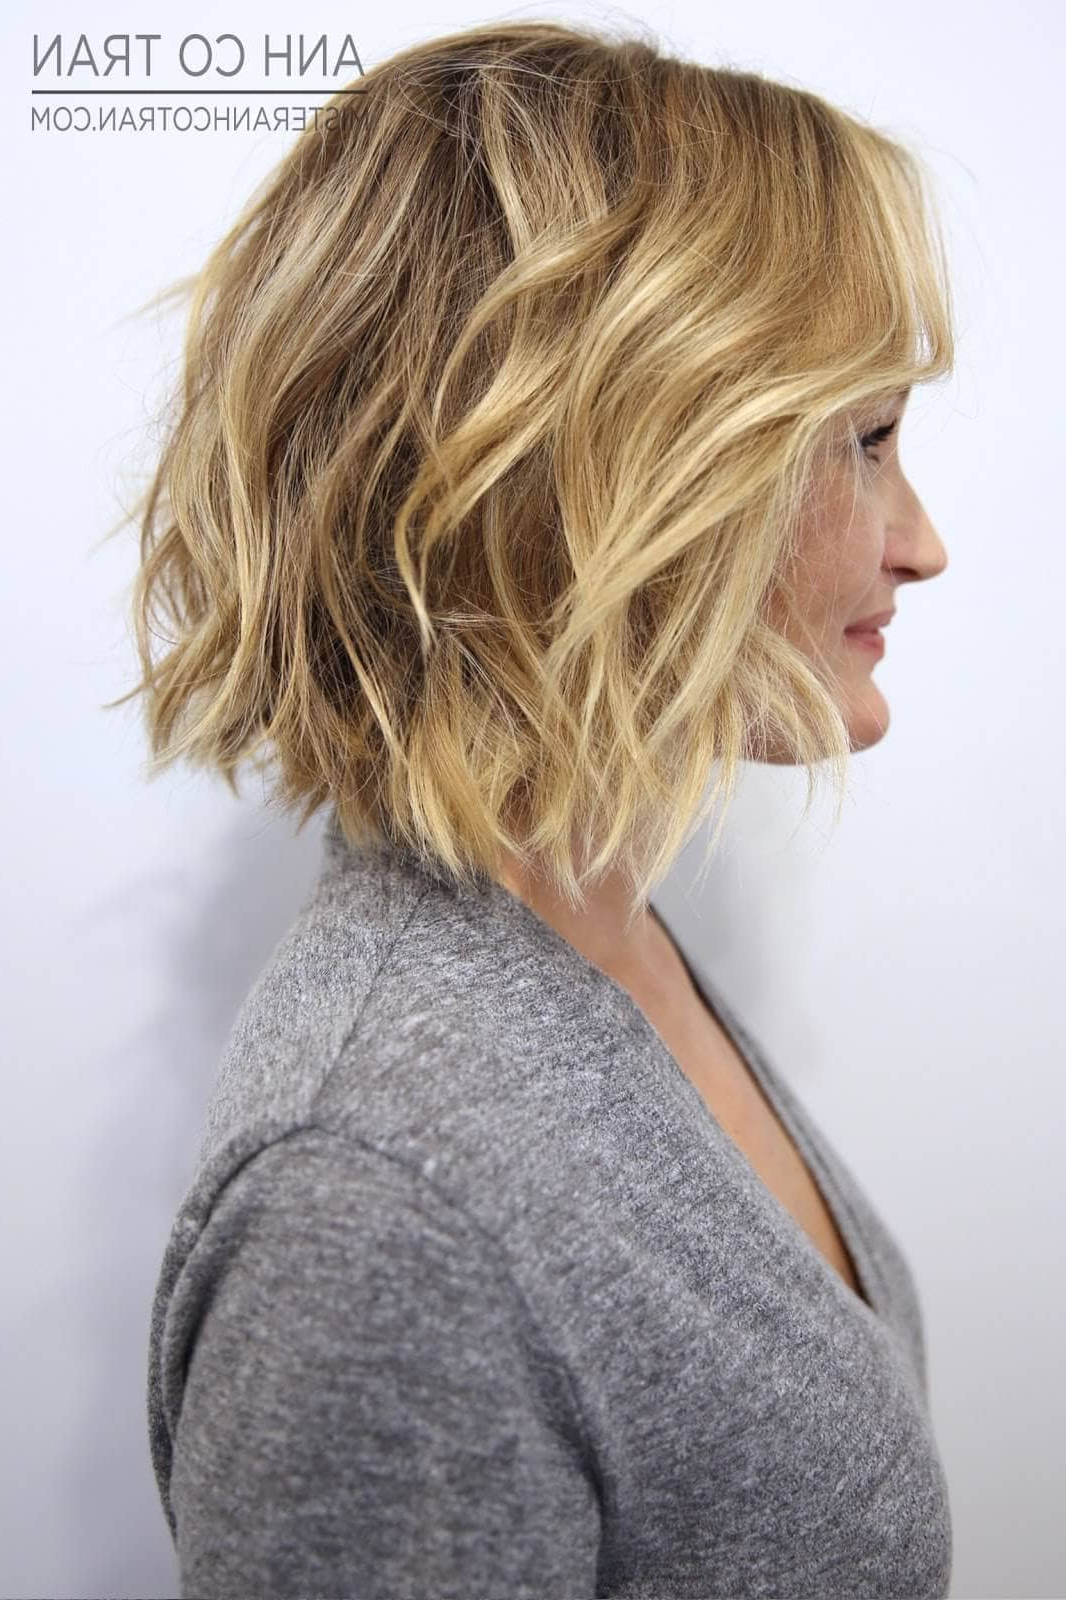 50 Ways To Wear Short Hair With Bangs For A Fresh New Look Within Chic Short Bob Haircuts With Bangs (View 15 of 20)